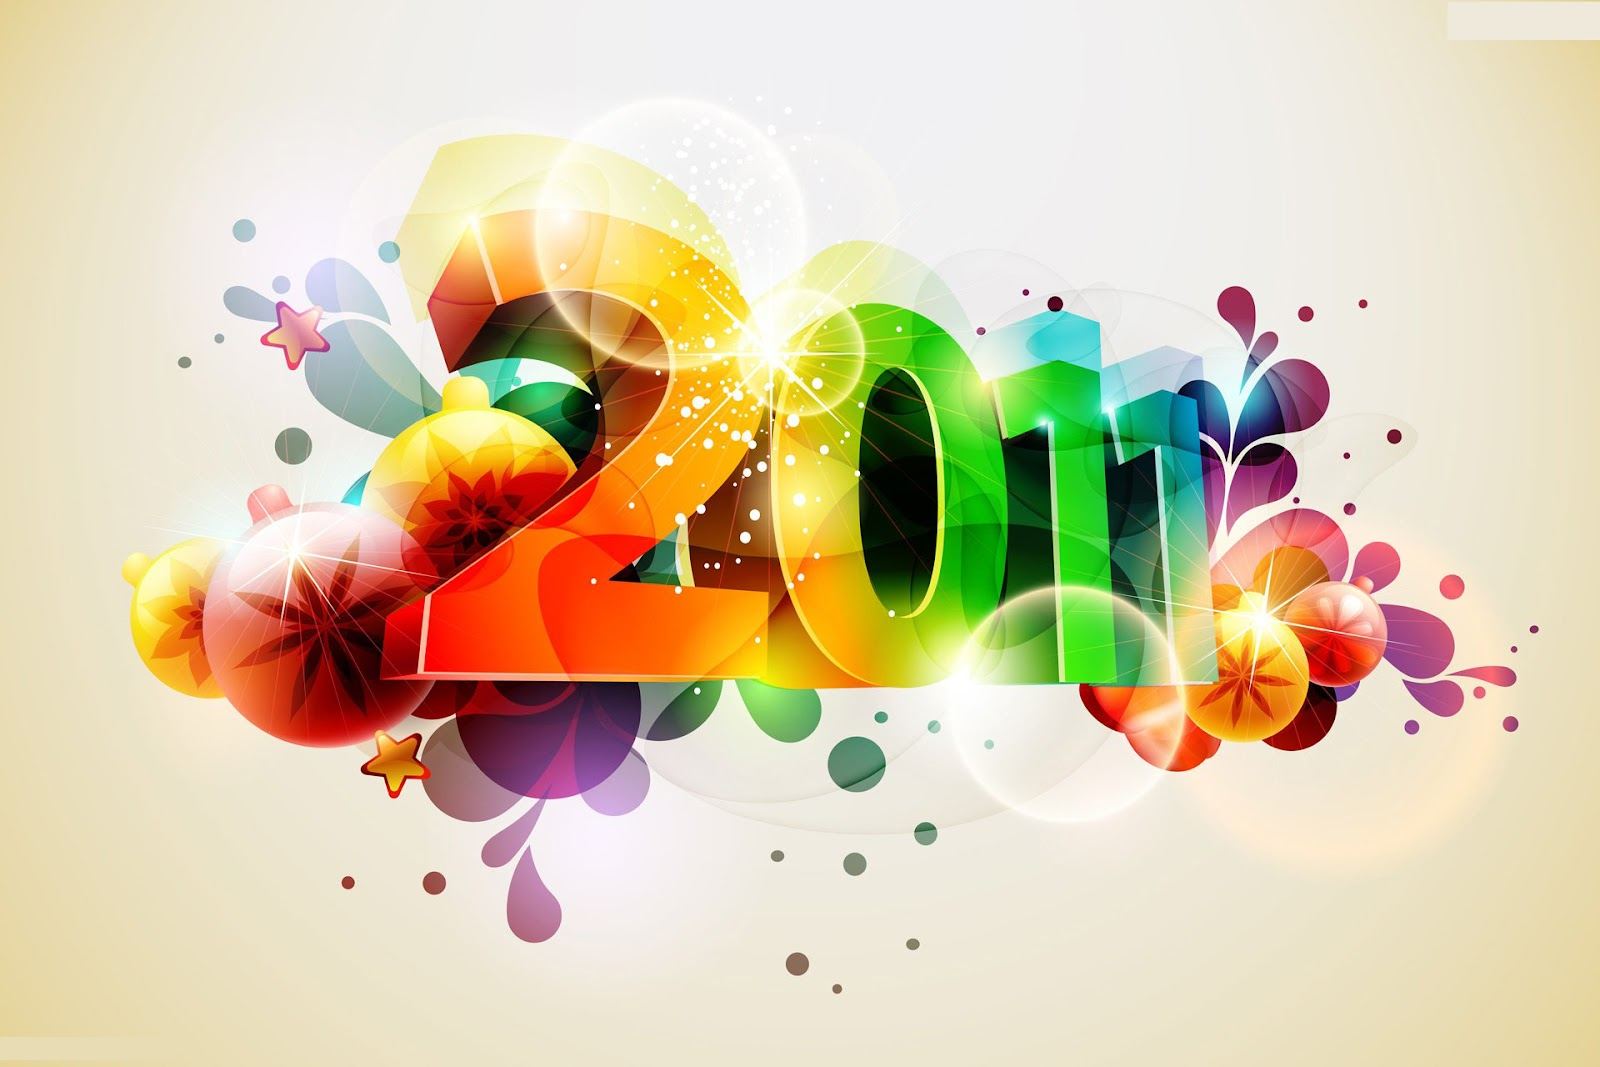 New Year 2011 Miscellaneous Sizes Wallpapers Hr Wallpapers